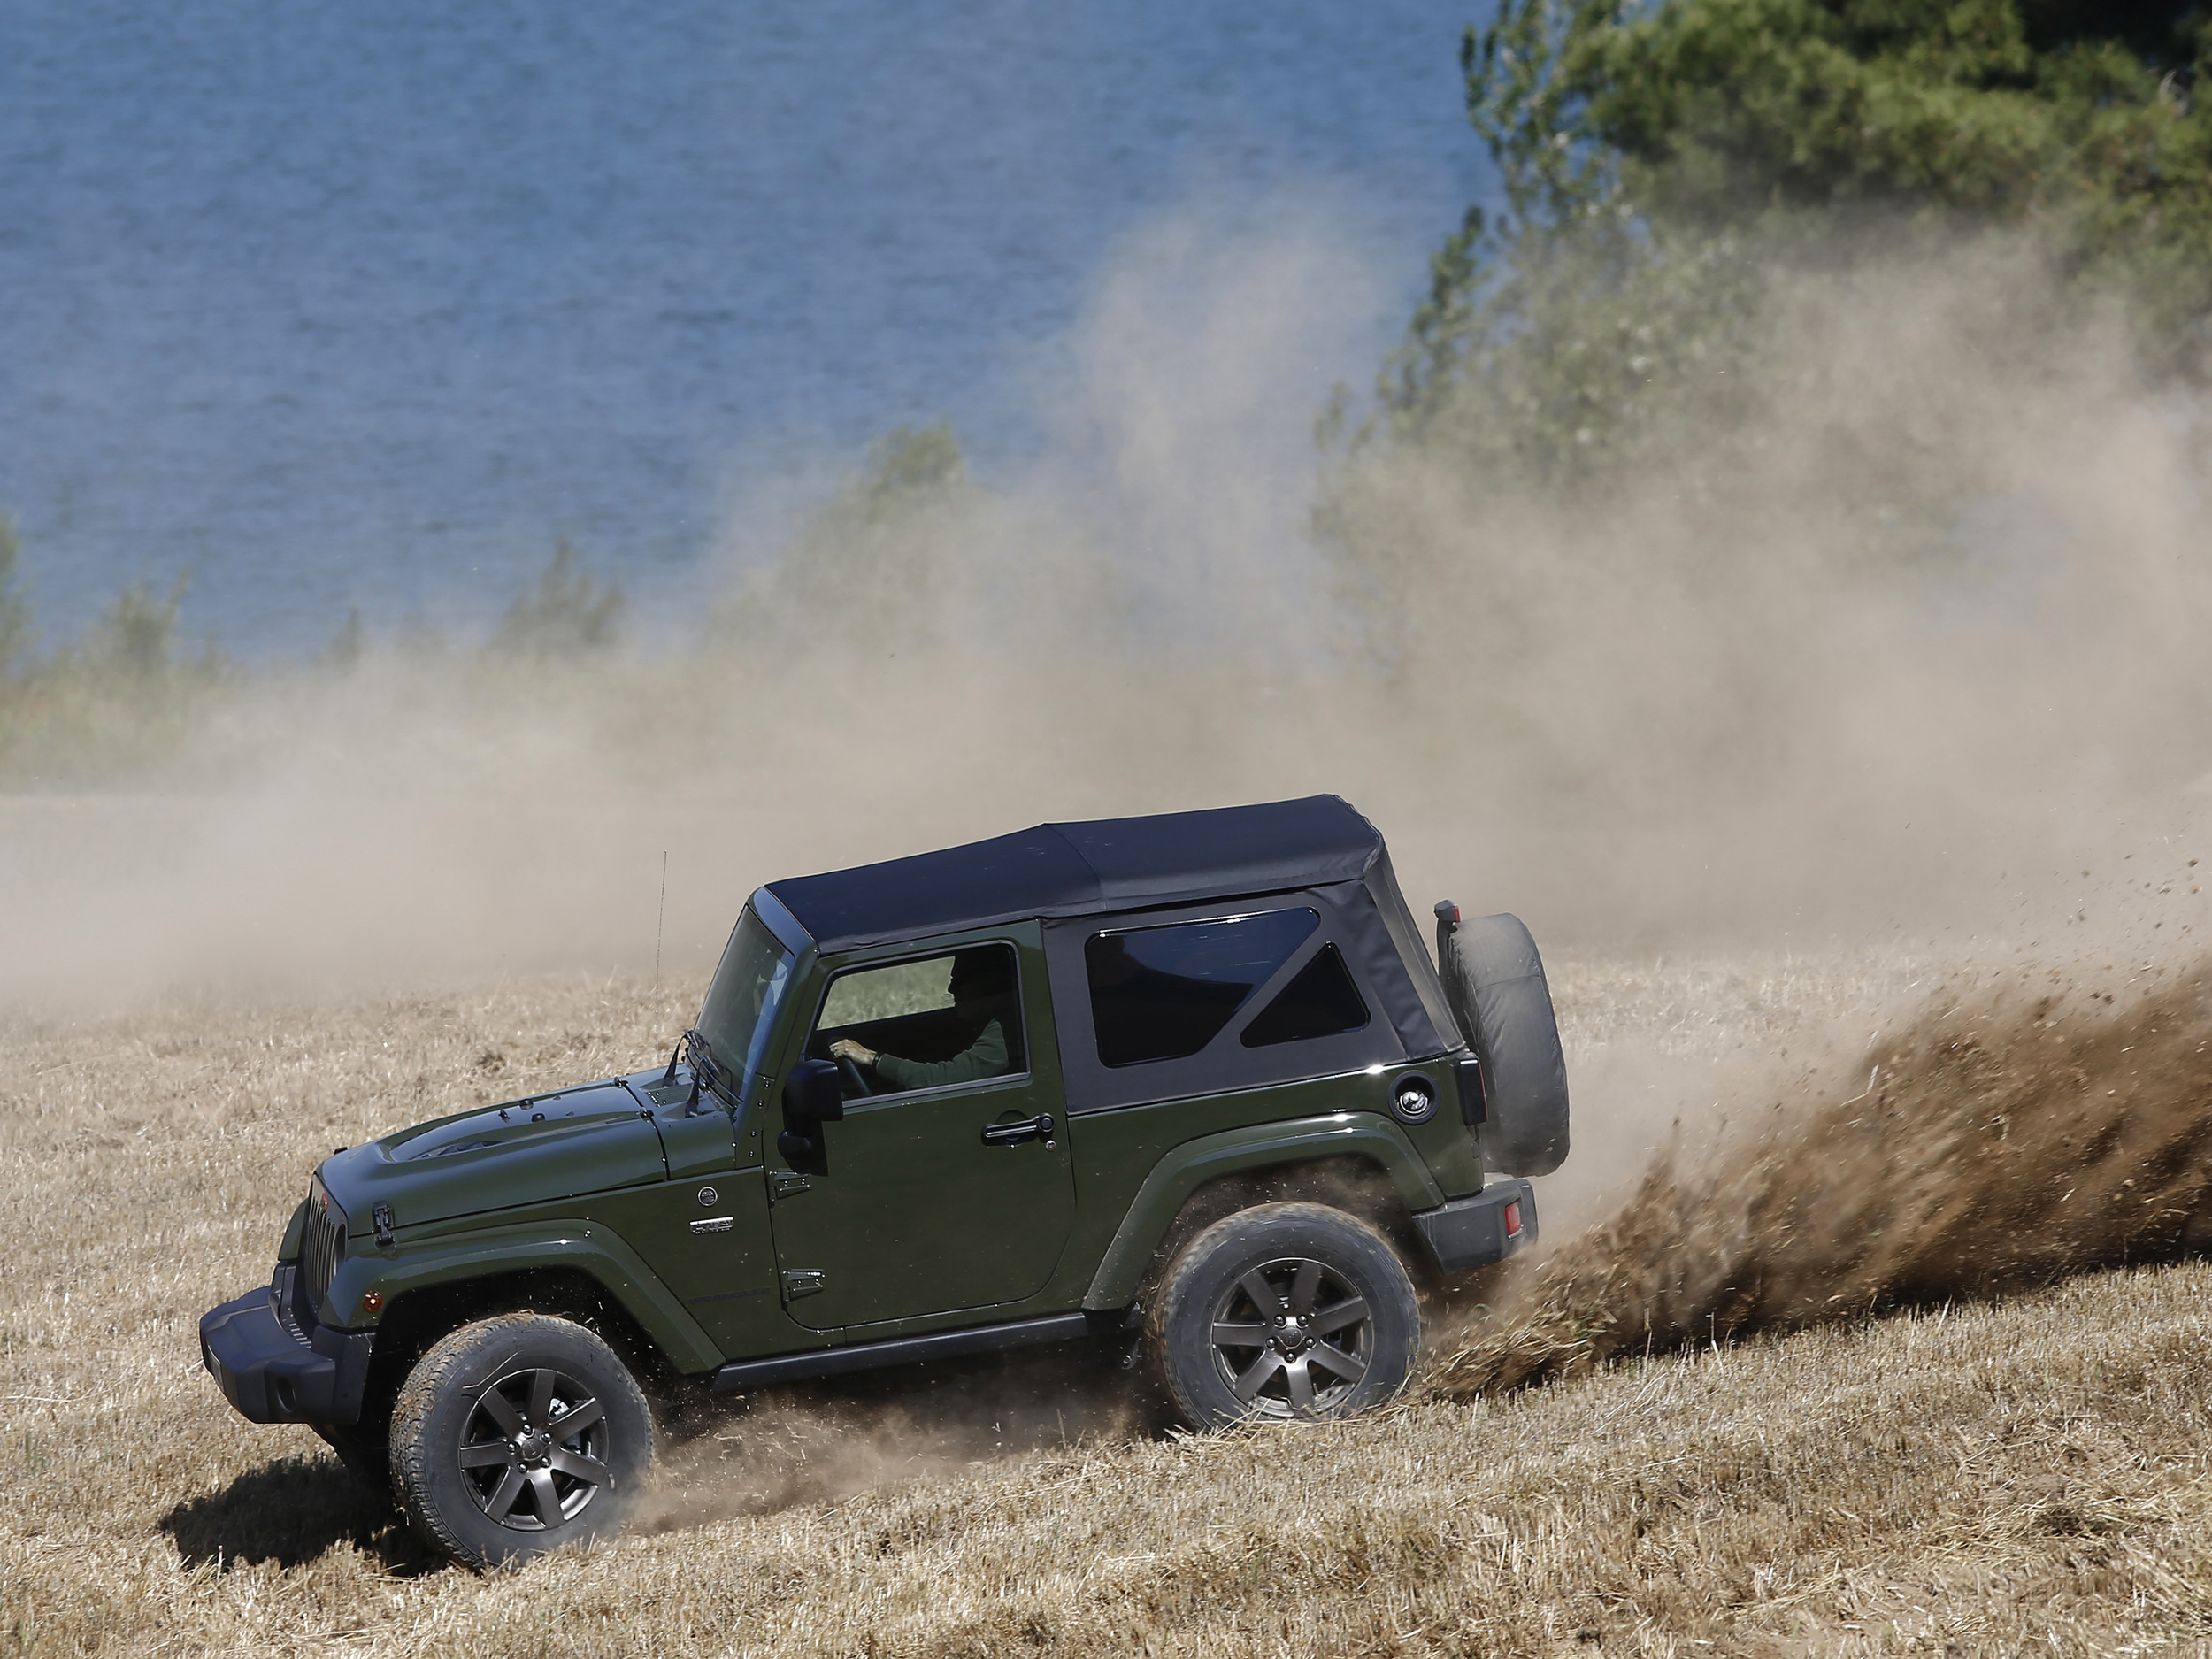 160621_Jeep_75th-Anniversary-series_13.jpg